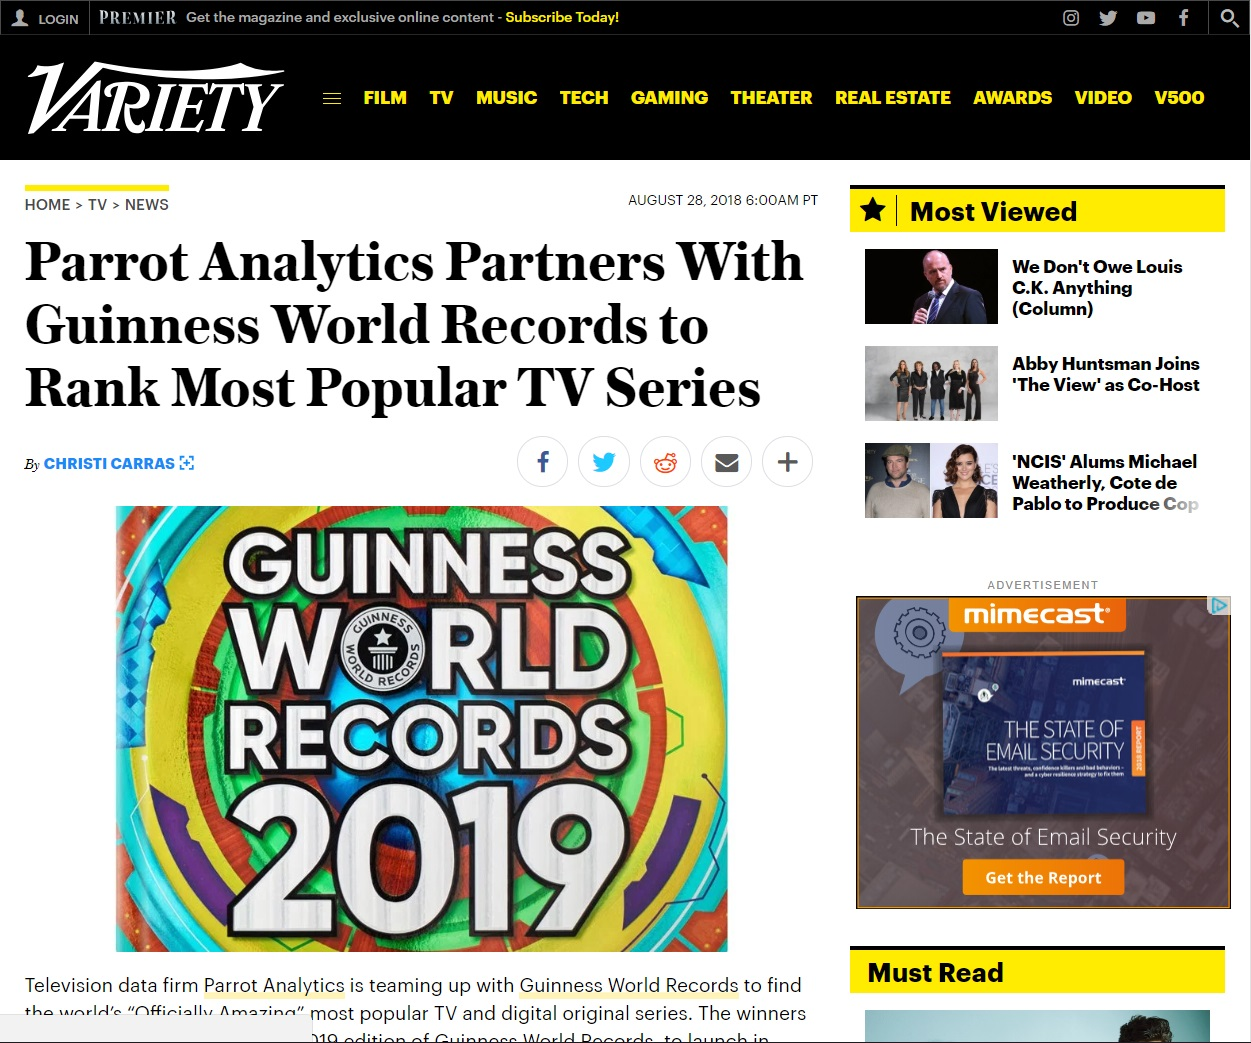 Parrot Analytics Partners With Guinness World Records to Rank Most Popular TV Series